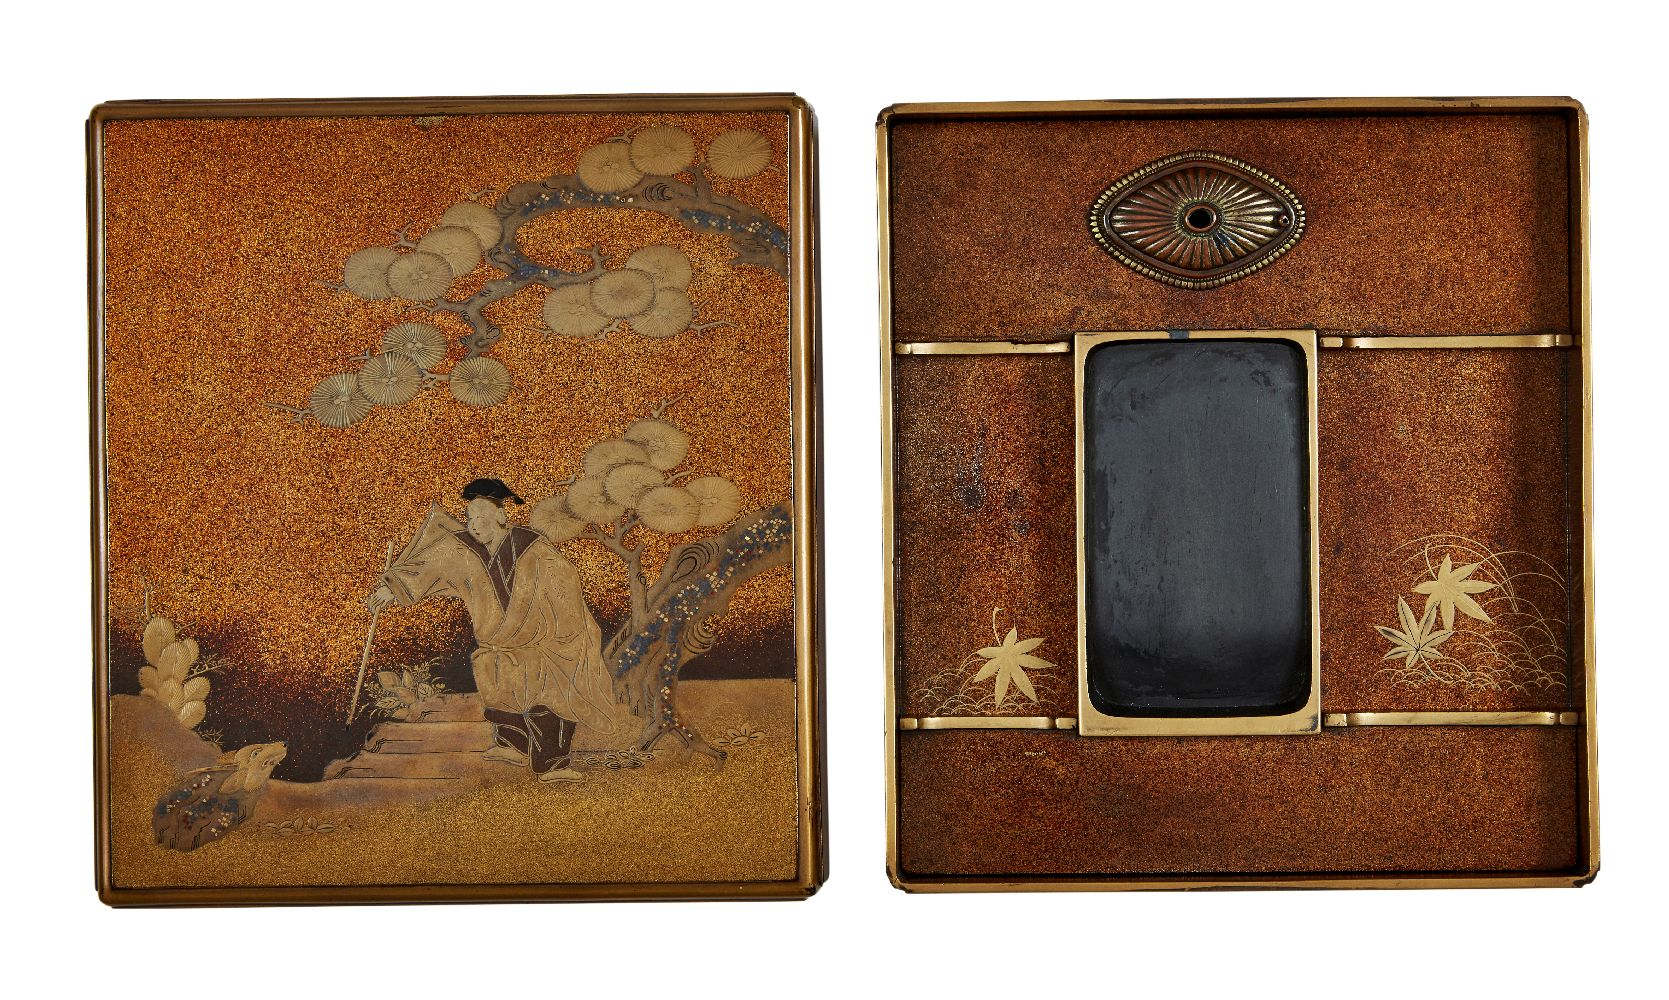 A Japanese suzuribako, 18th century, decorated with maki-e courtier confronting a mythical - Image 2 of 2